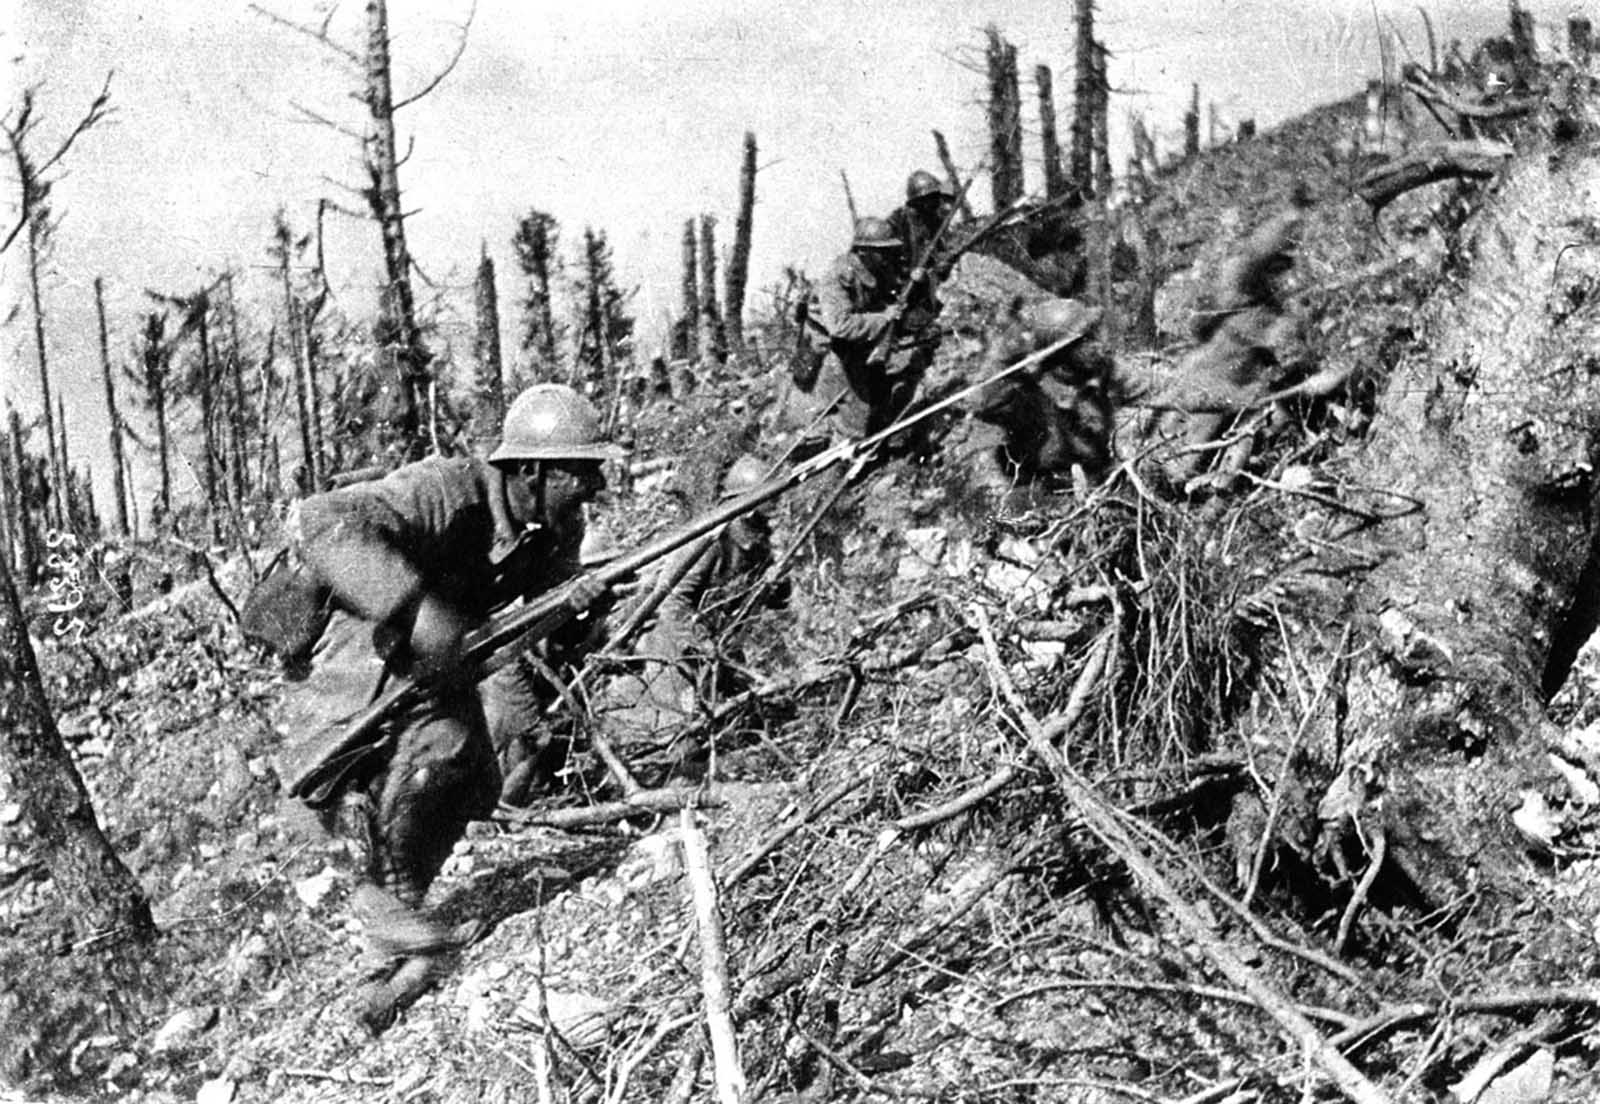 French soldiers in a bayonet charge, up a steep slope in the Argonne Forest in 1915. During the Second Battle of Champagne, 450,000 French soldiers advanced against a force of 220,000 Germans, momentarily gaining a small amount of territory, but losing it back to the Germans within weeks. Combined casualties came to more than 215,000 from this battle alone.